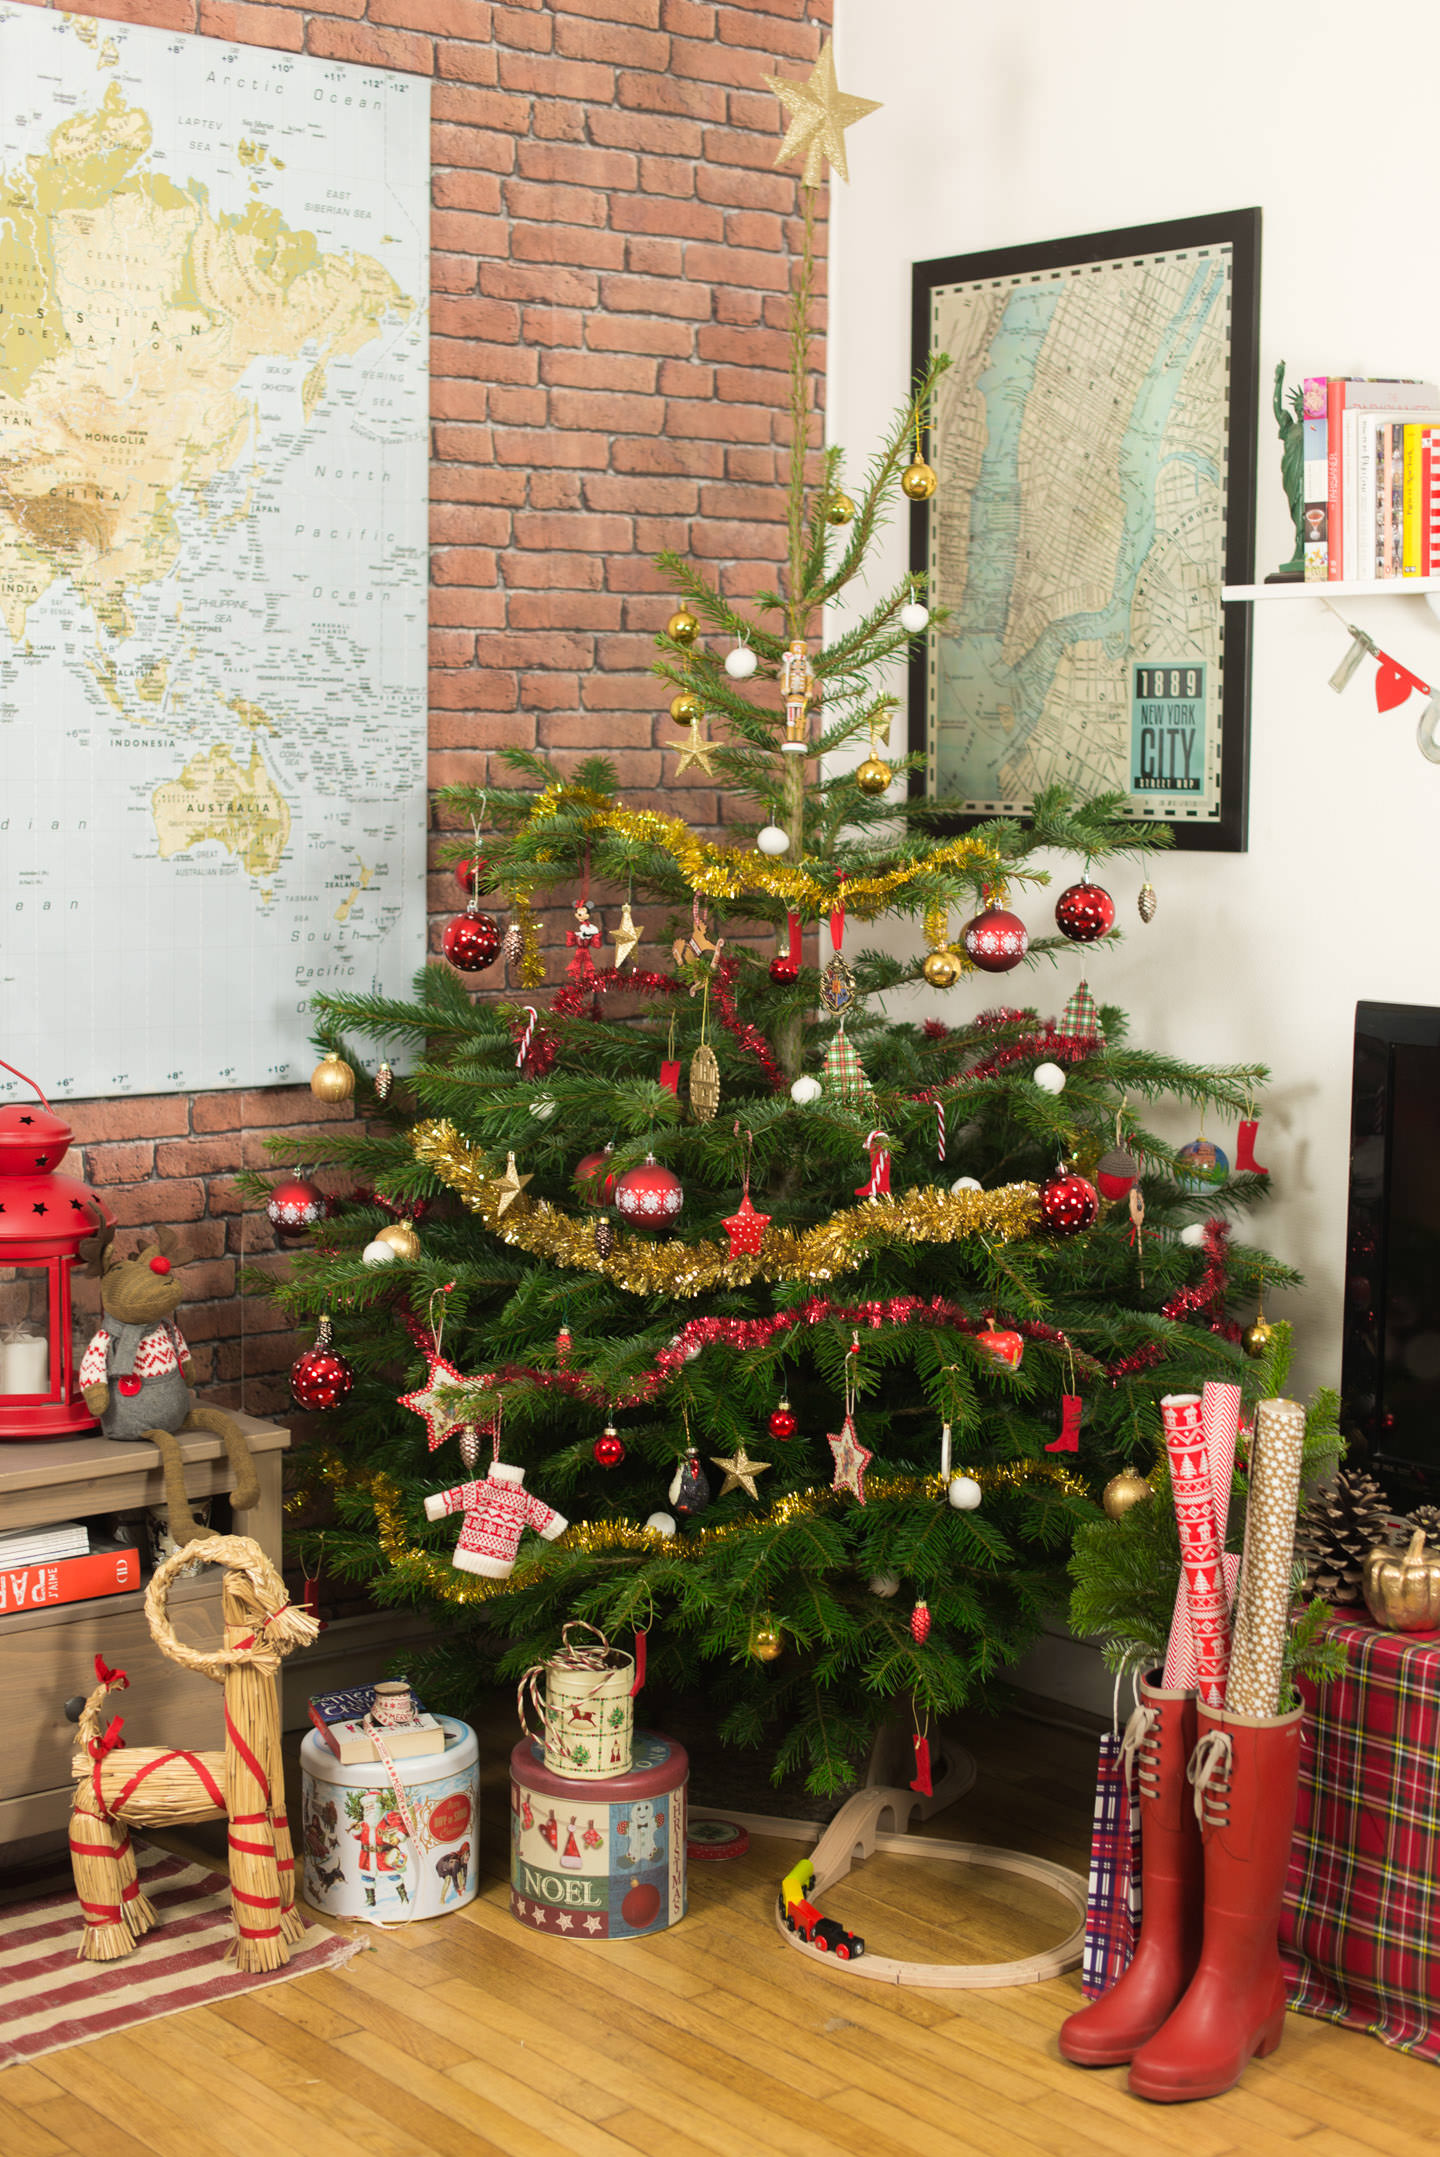 Blog-mode-And-The-City-Lifestyle-decorer-son-sapin-de-noel